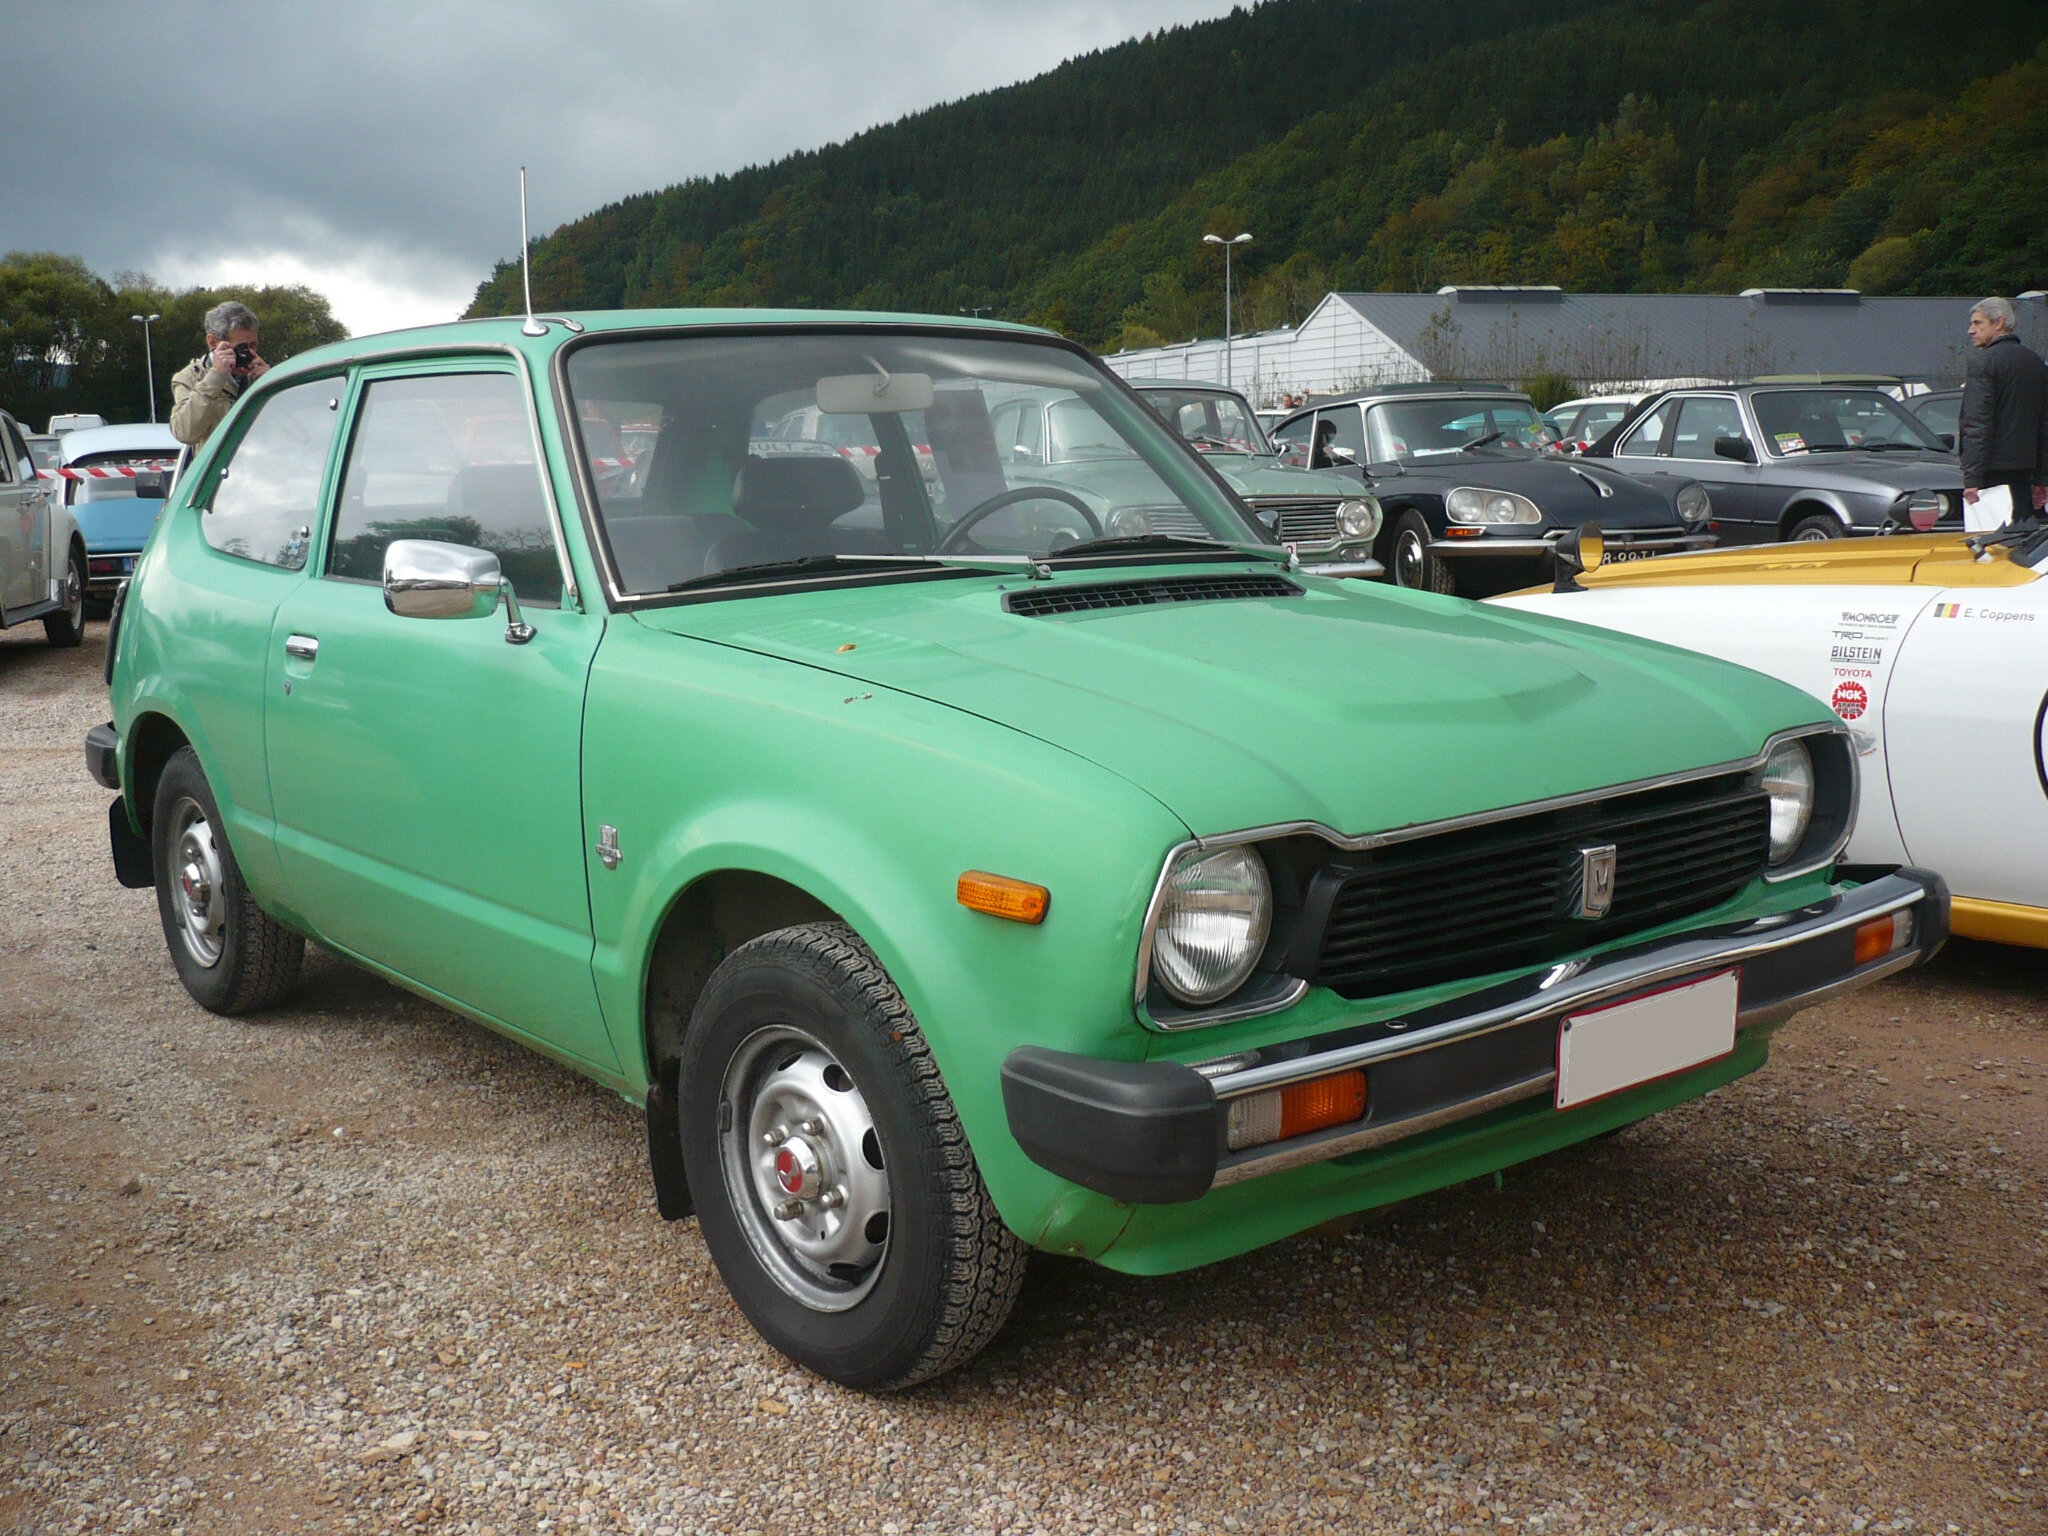 HONDA Civic hondamatic Malmedy (1)